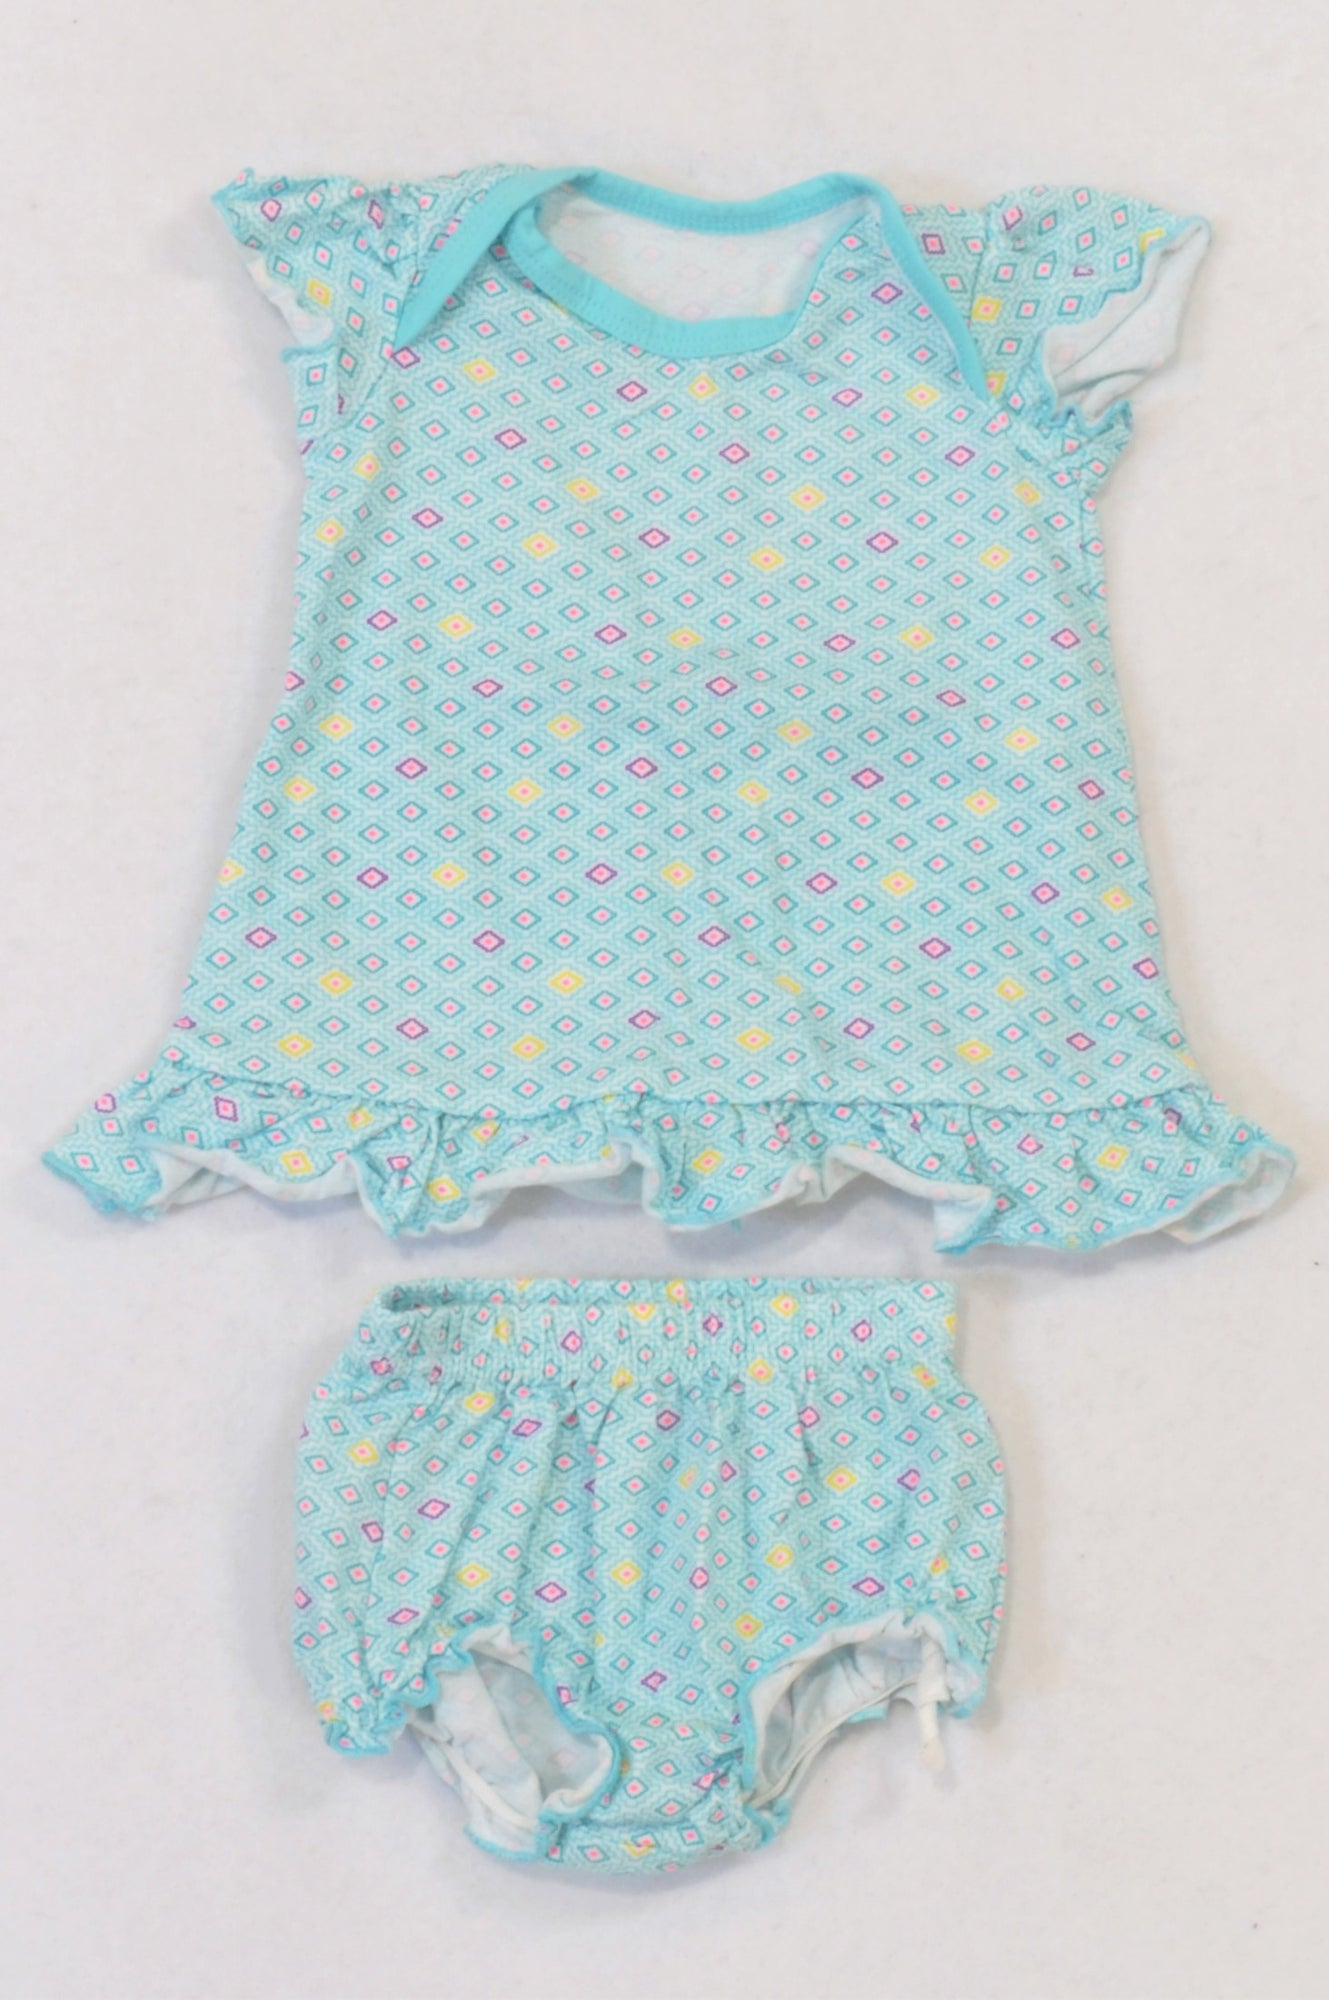 Woolworths Aqua Geometric Diamond Dress & Bloomers Outfit Girls 0-3 months